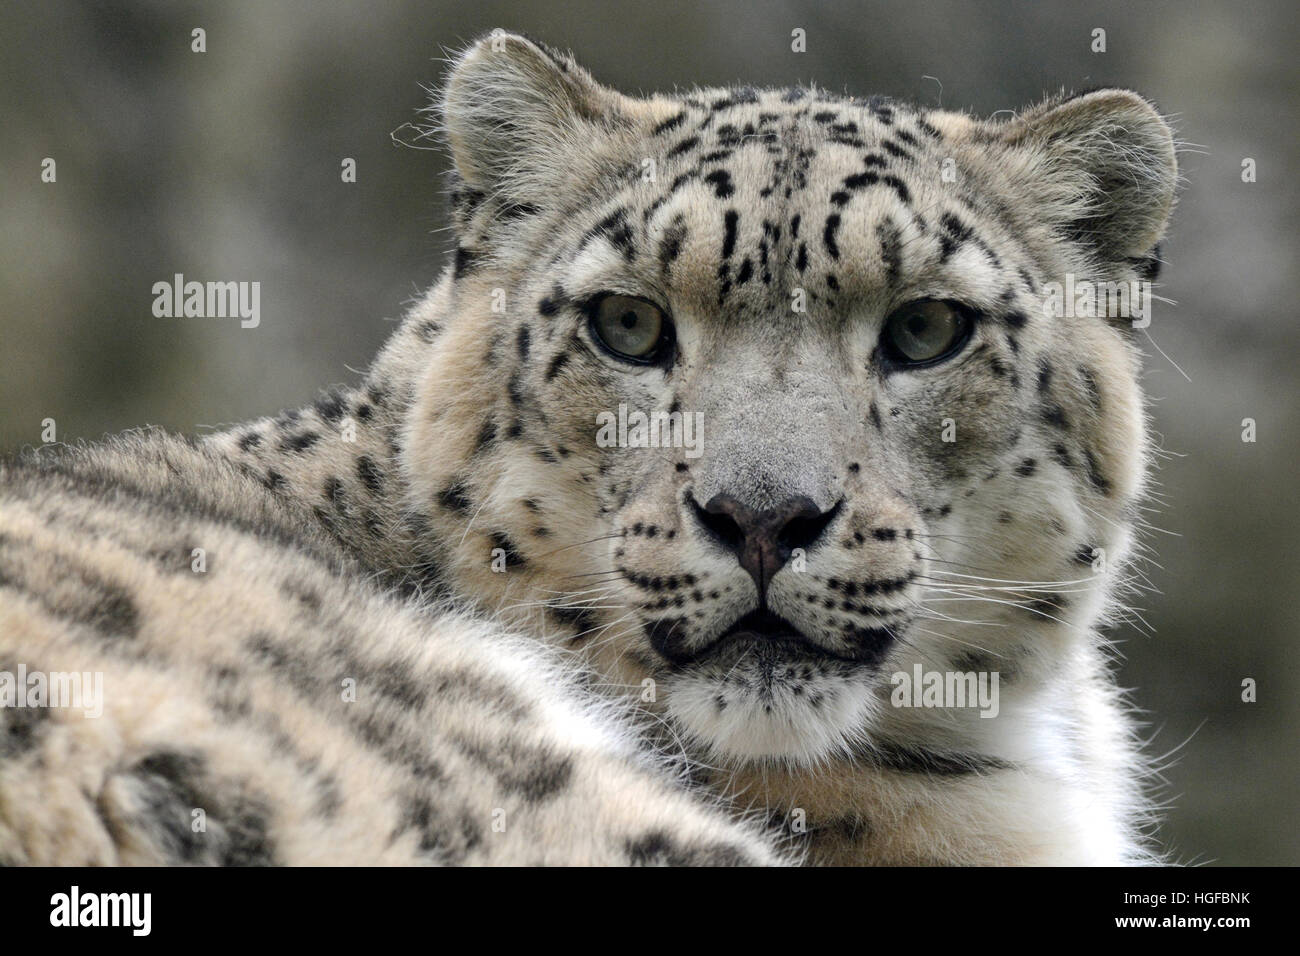 Head shot of a Snow Leopard - Stock Image